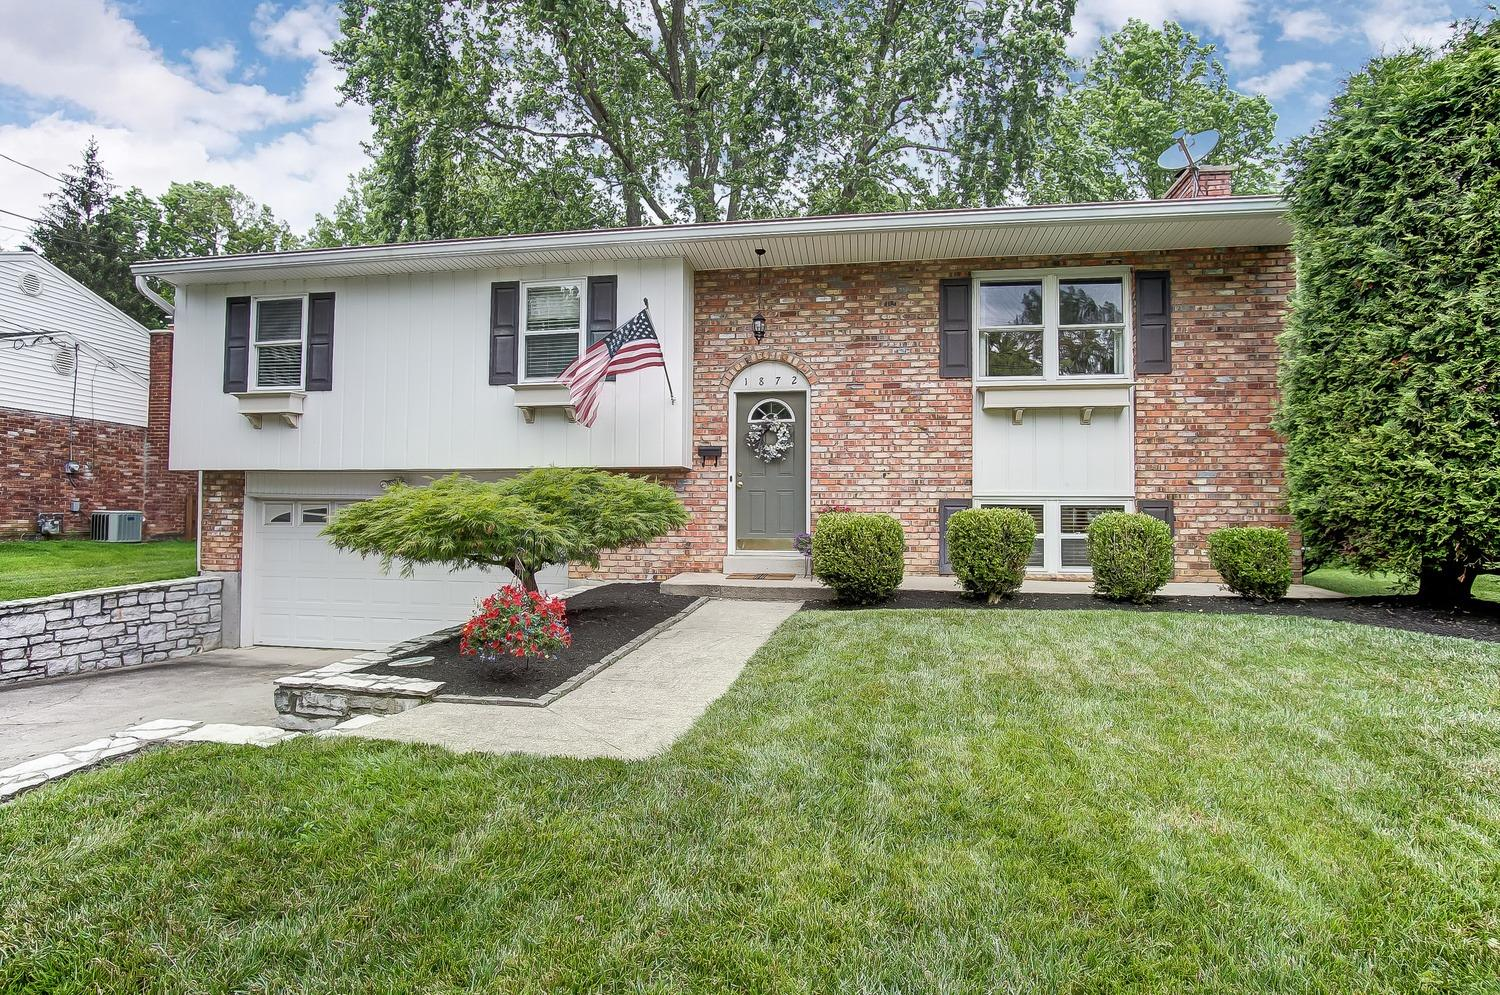 Photo 1 for 1872 Lindenhall Dr Loveland, OH 45140